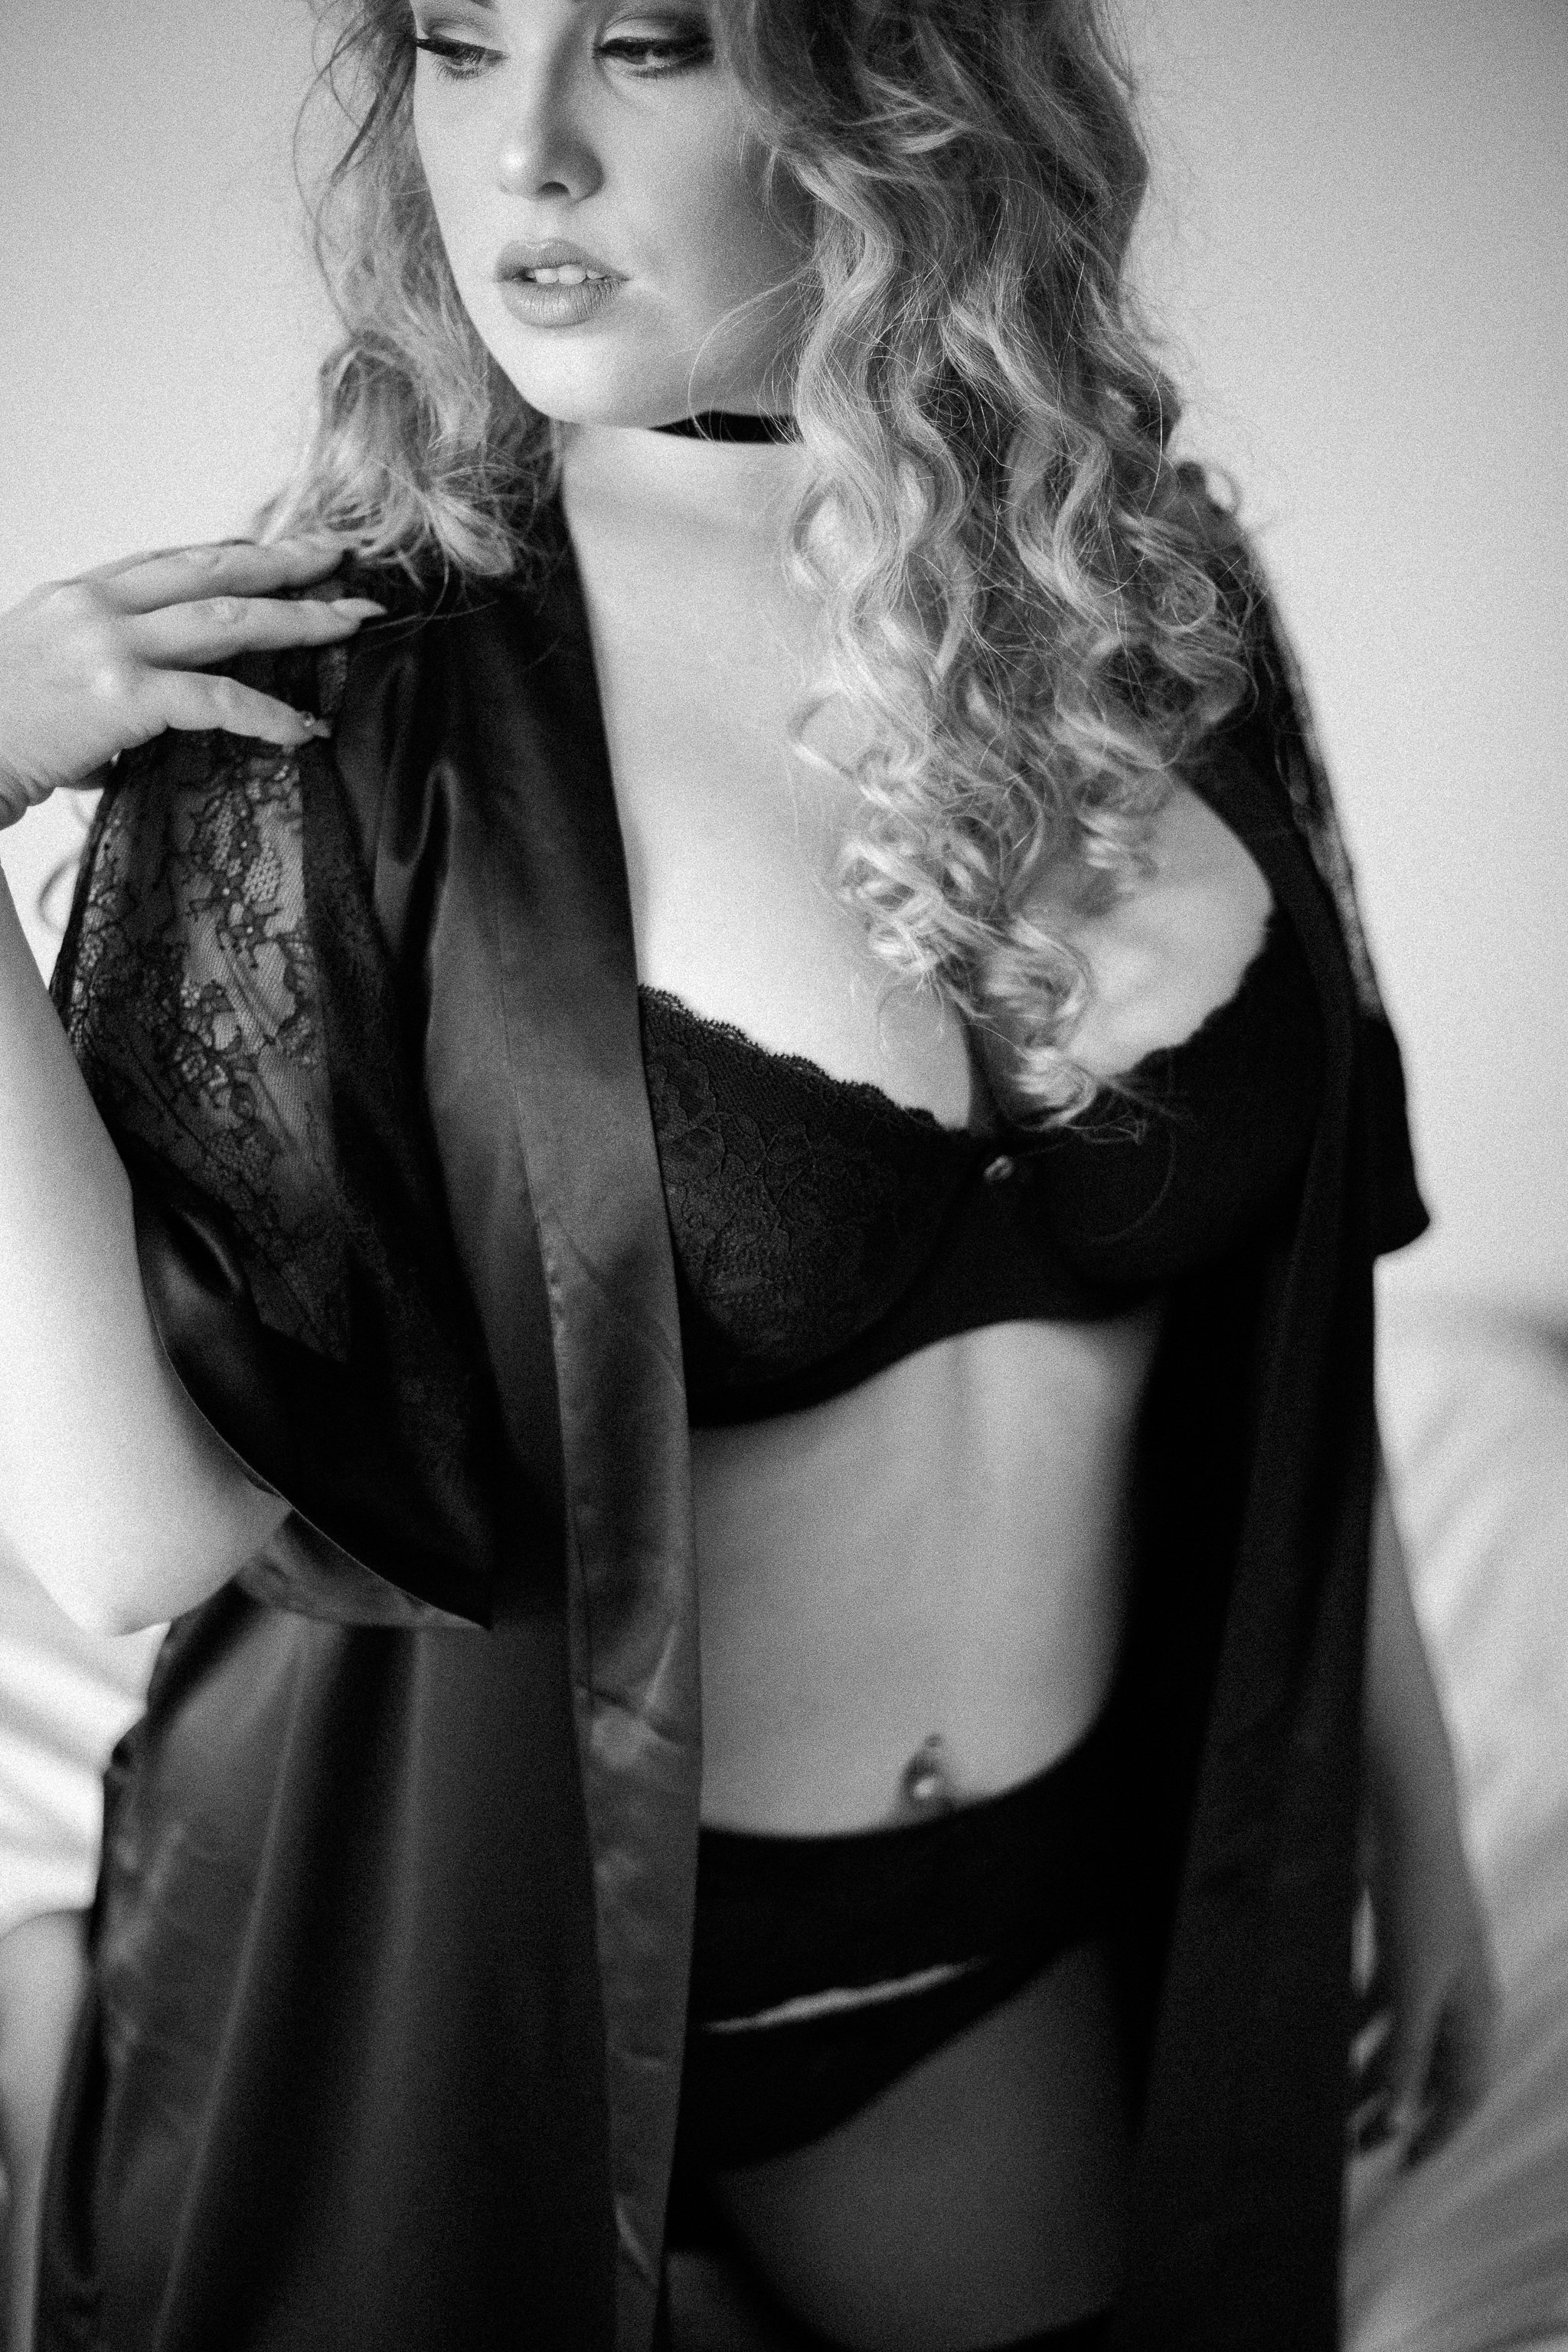 Black and white boudoir by Alicia Yarrish